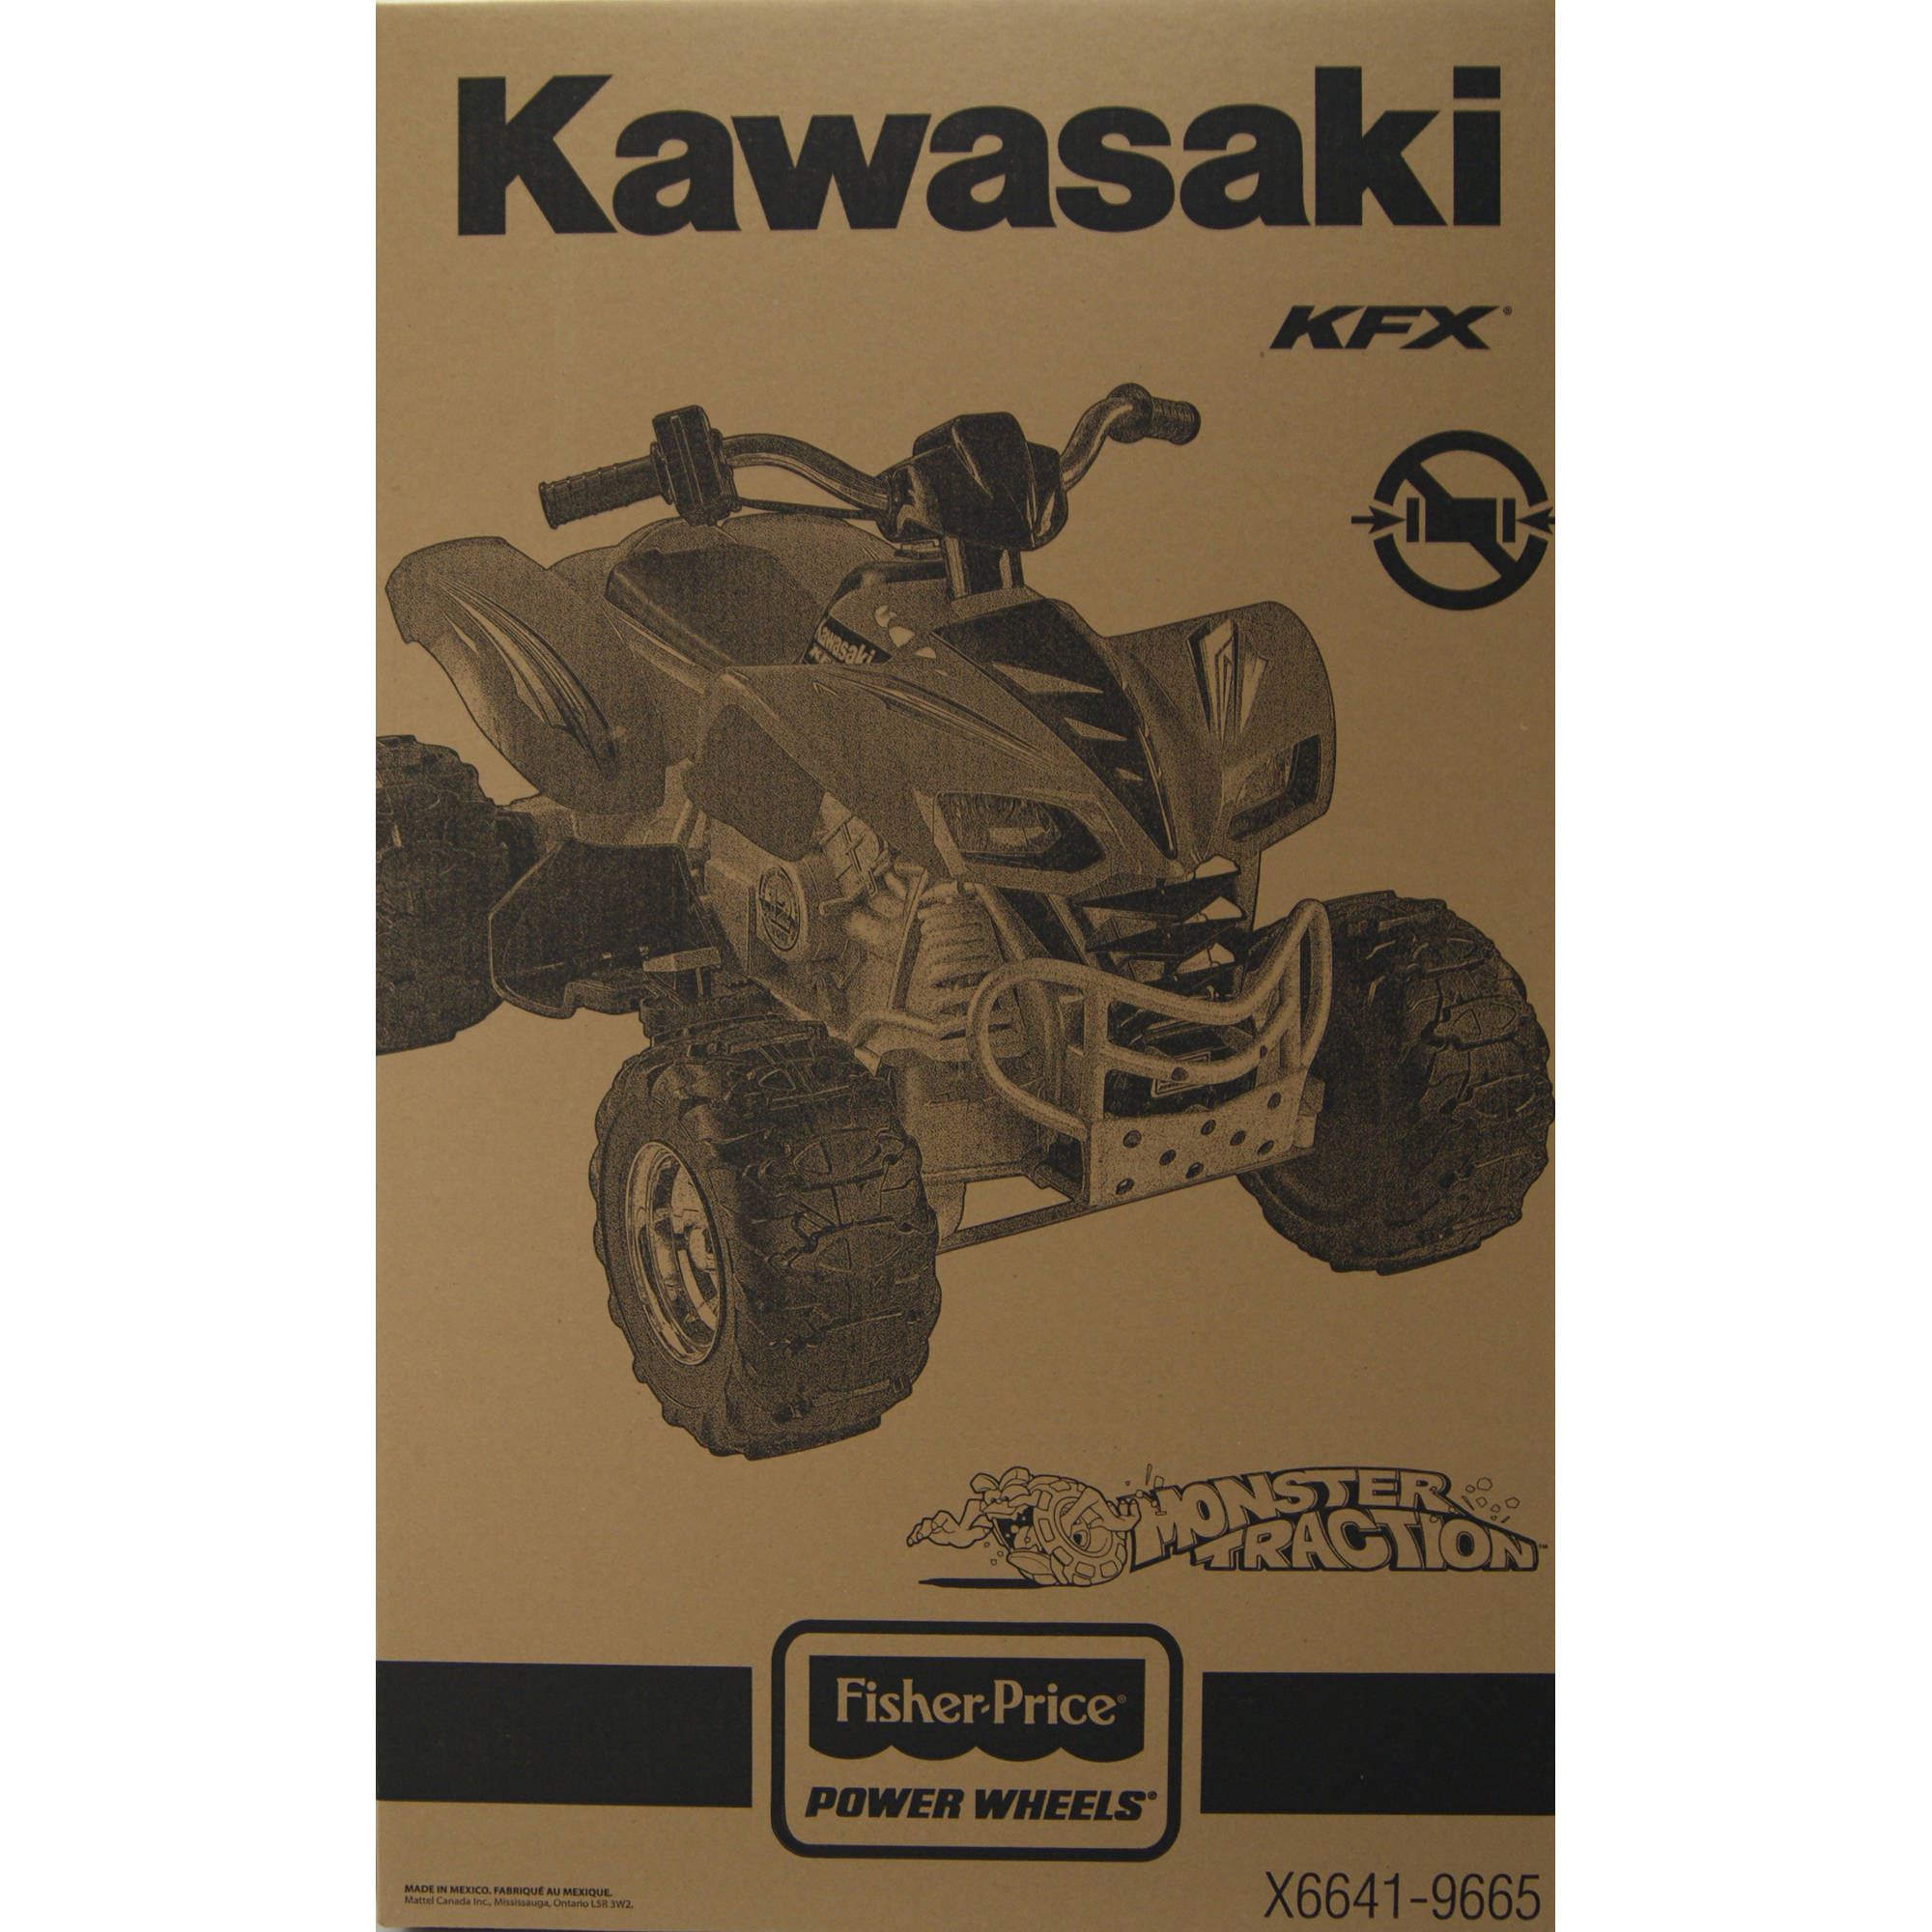 Power wheels kawasaki kfx 12 volt battery powered ride on green power wheels kawasaki kfx 12 volt battery powered ride on green walmart fandeluxe Images